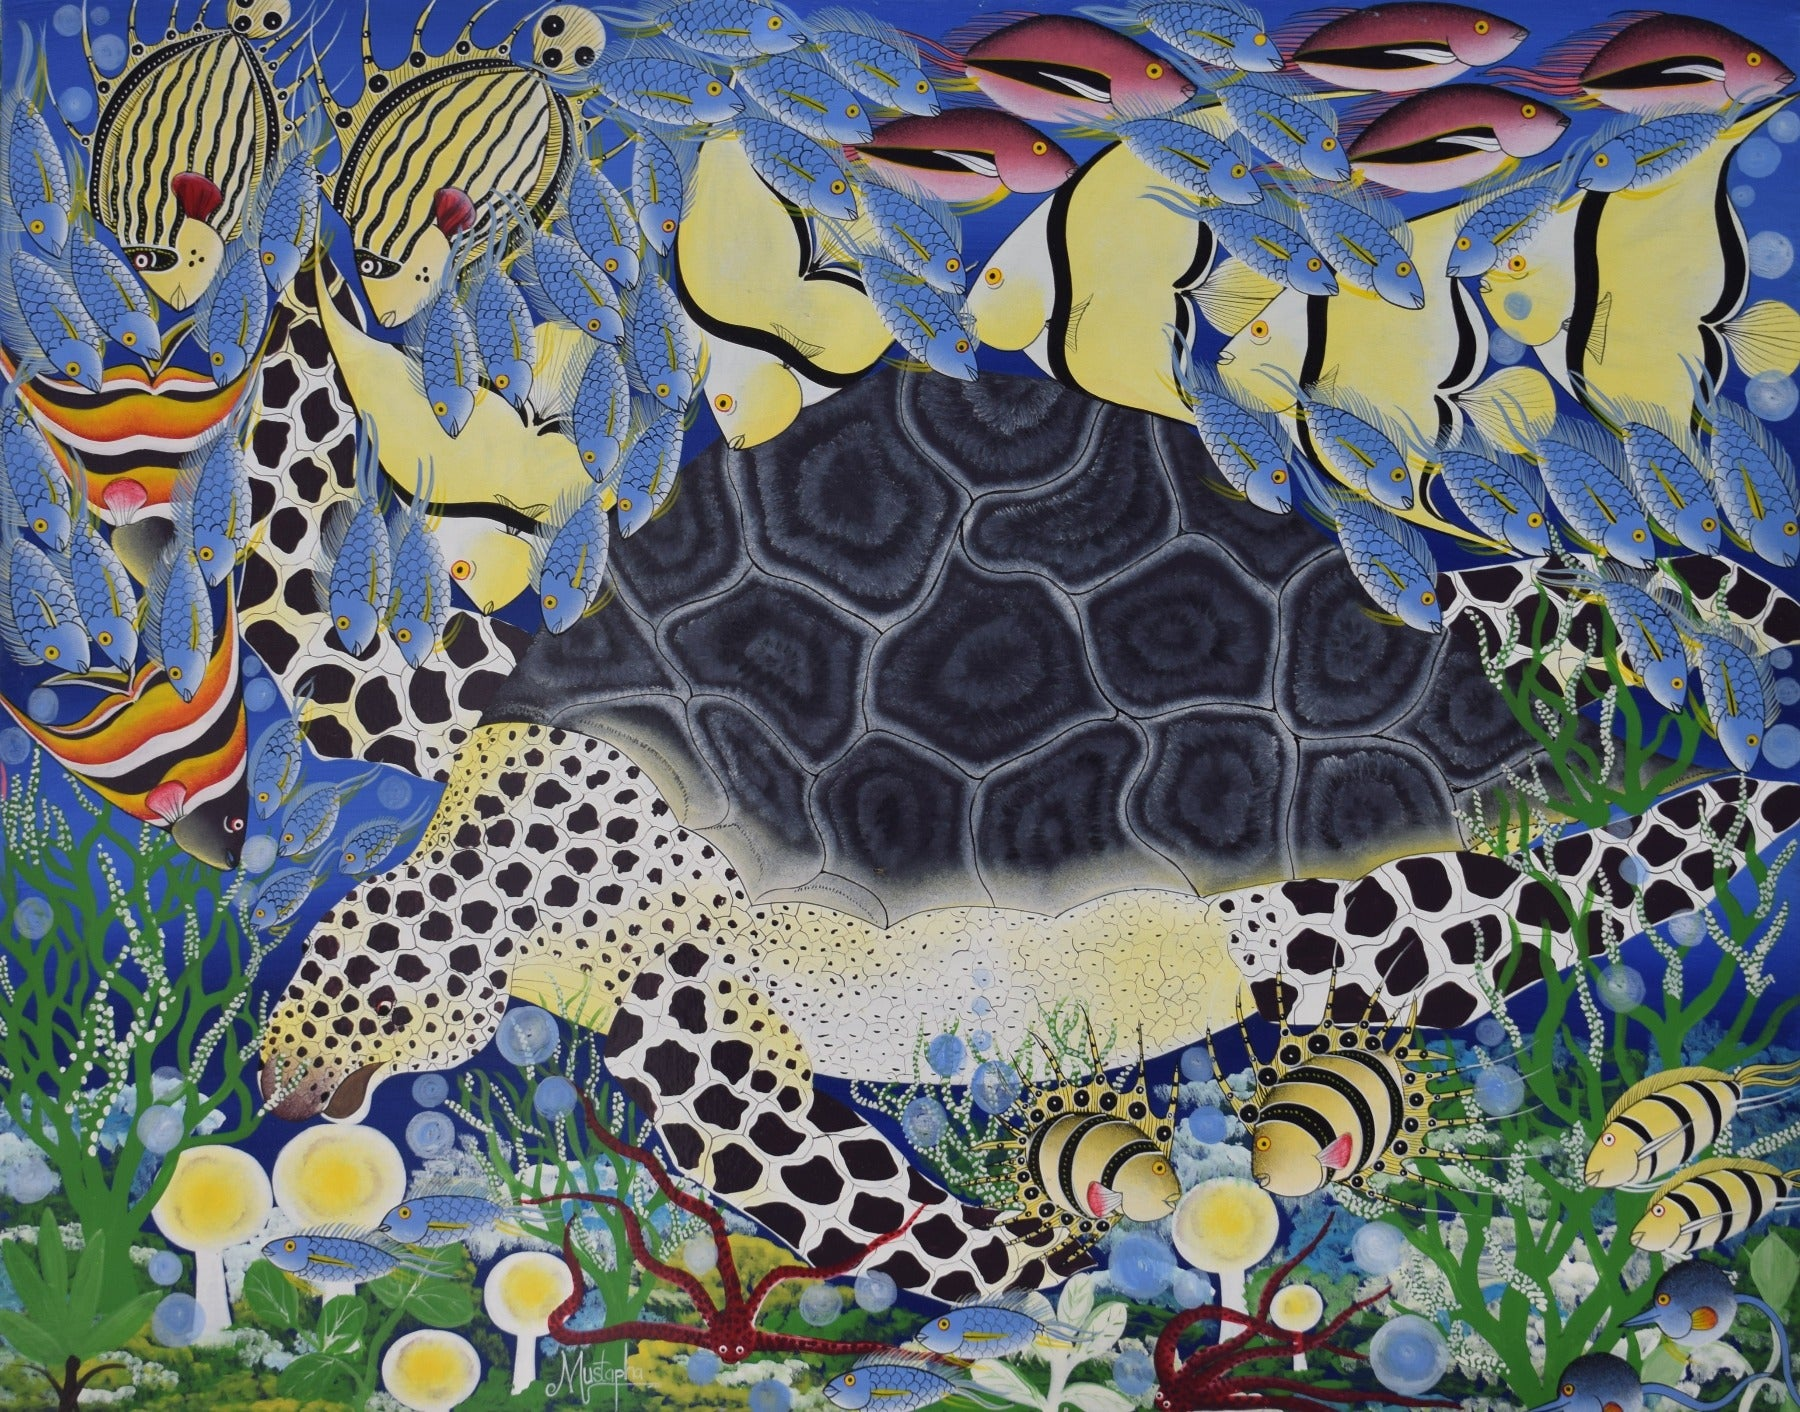 African art of a turtle